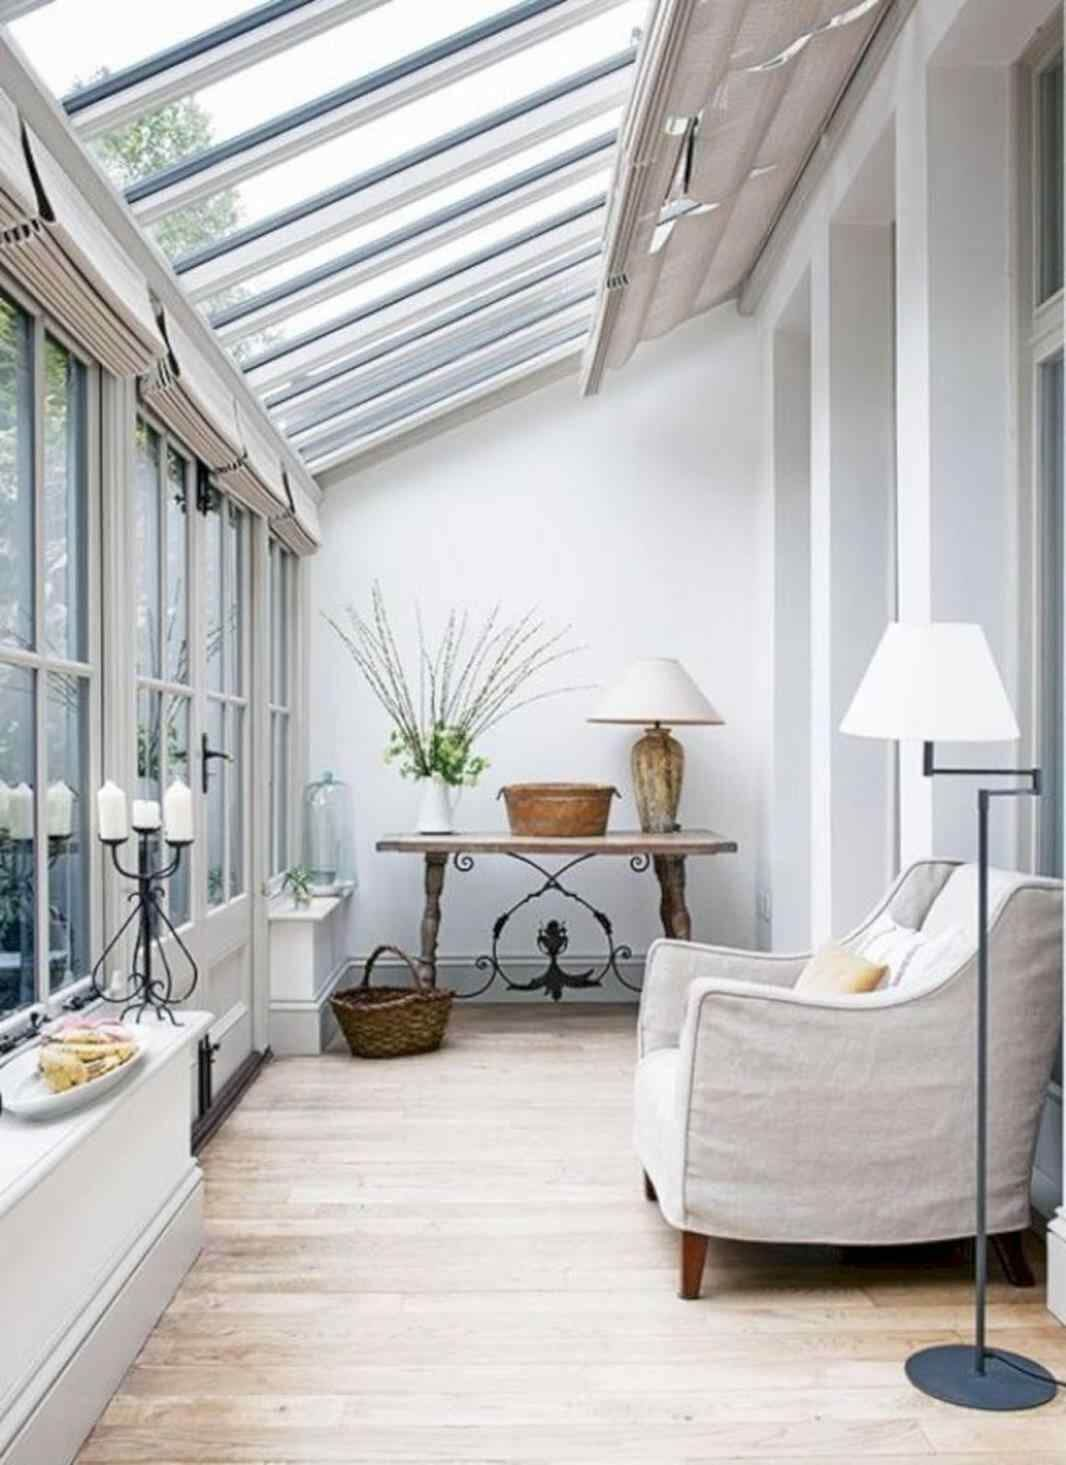 How Big Is Your Conservatory Going To Be?